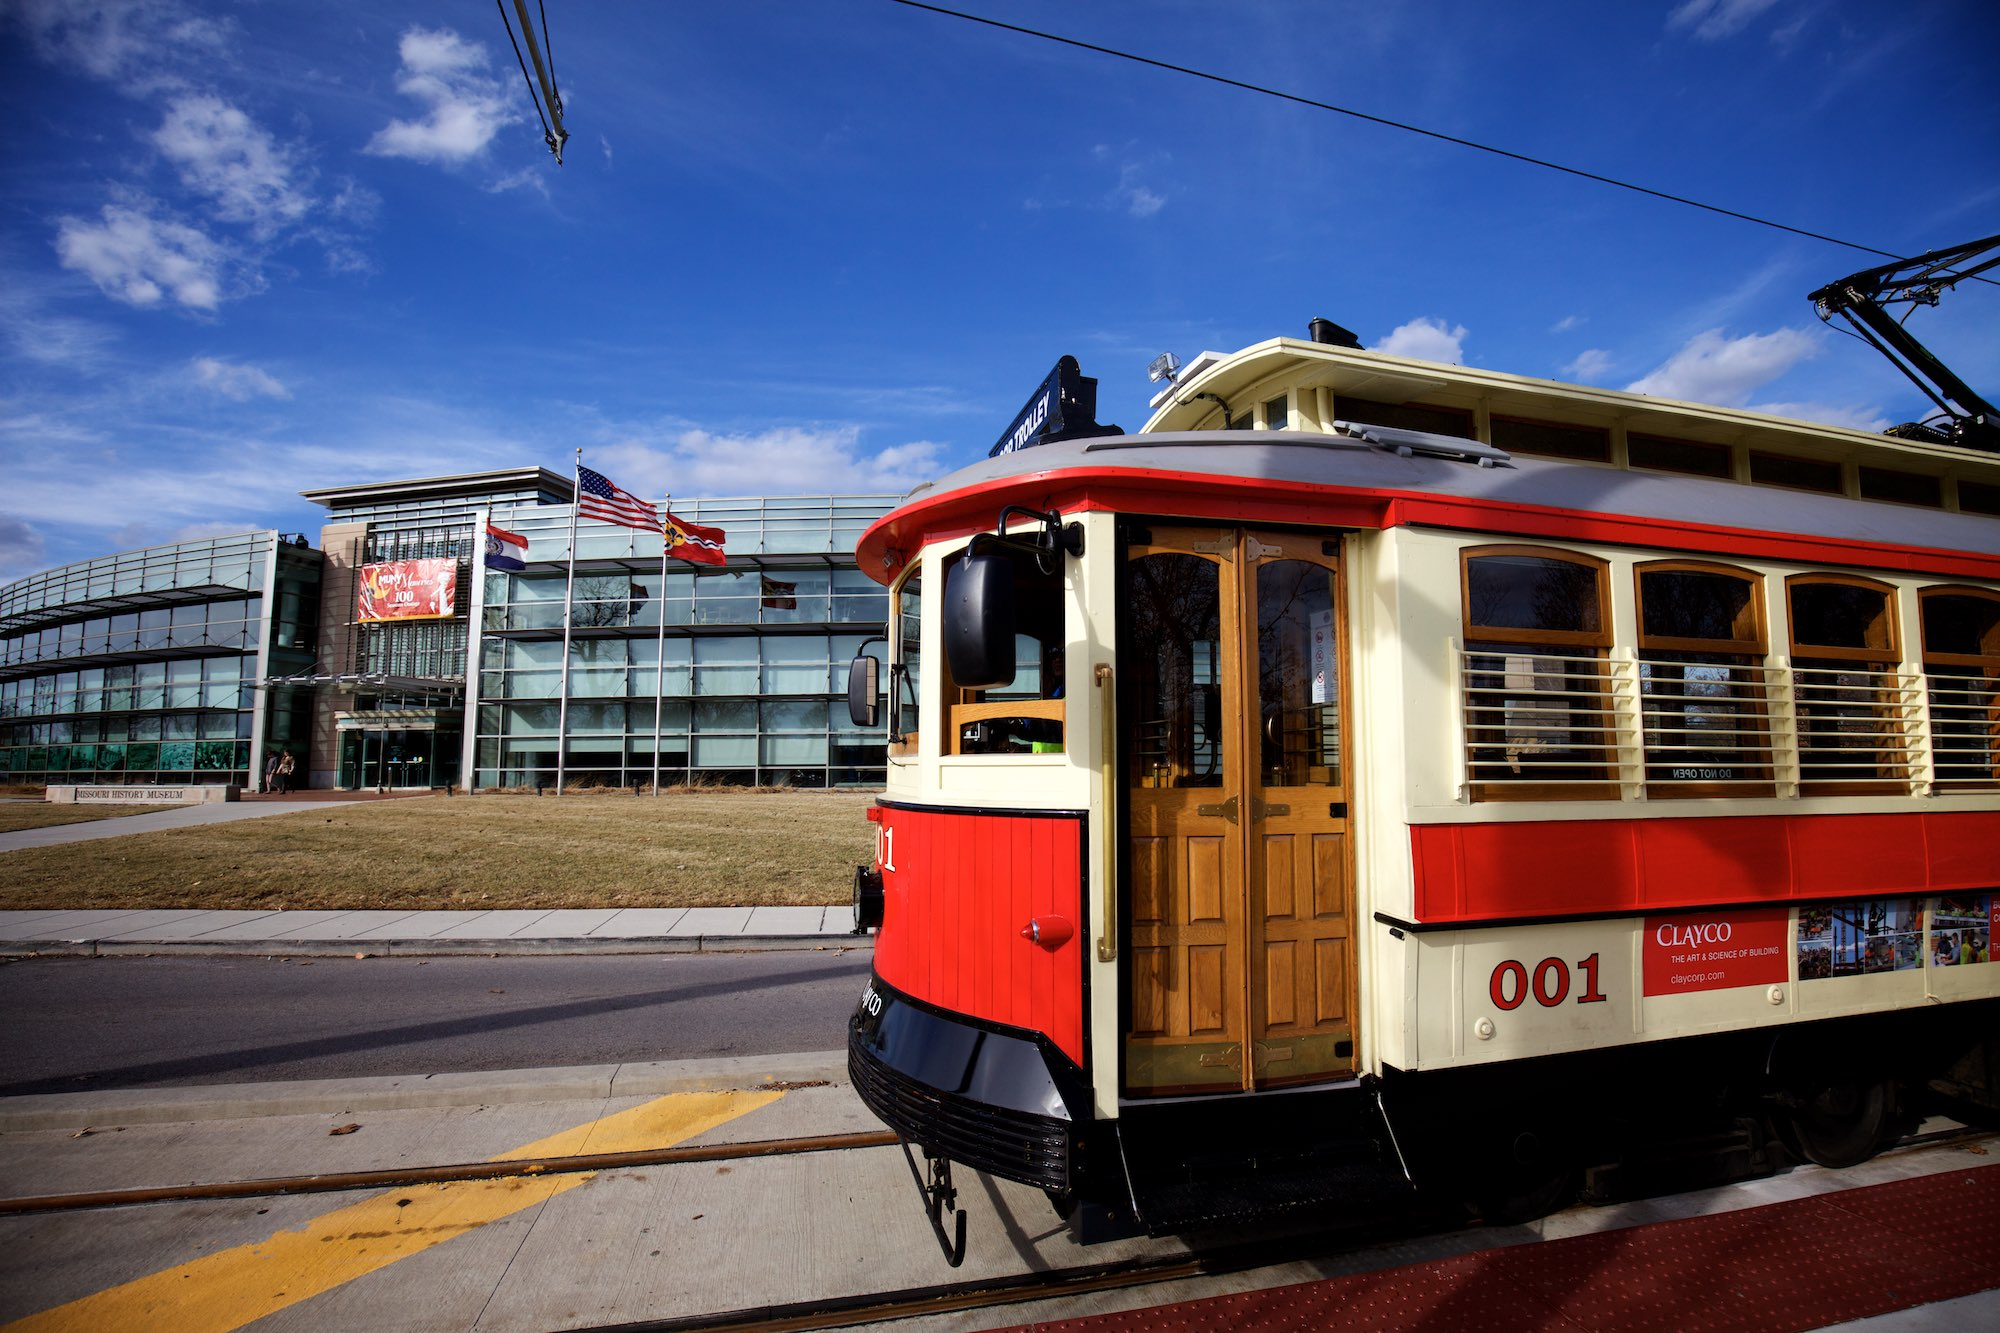 Day 45 - The loop trolly by the Missouri History Museum.